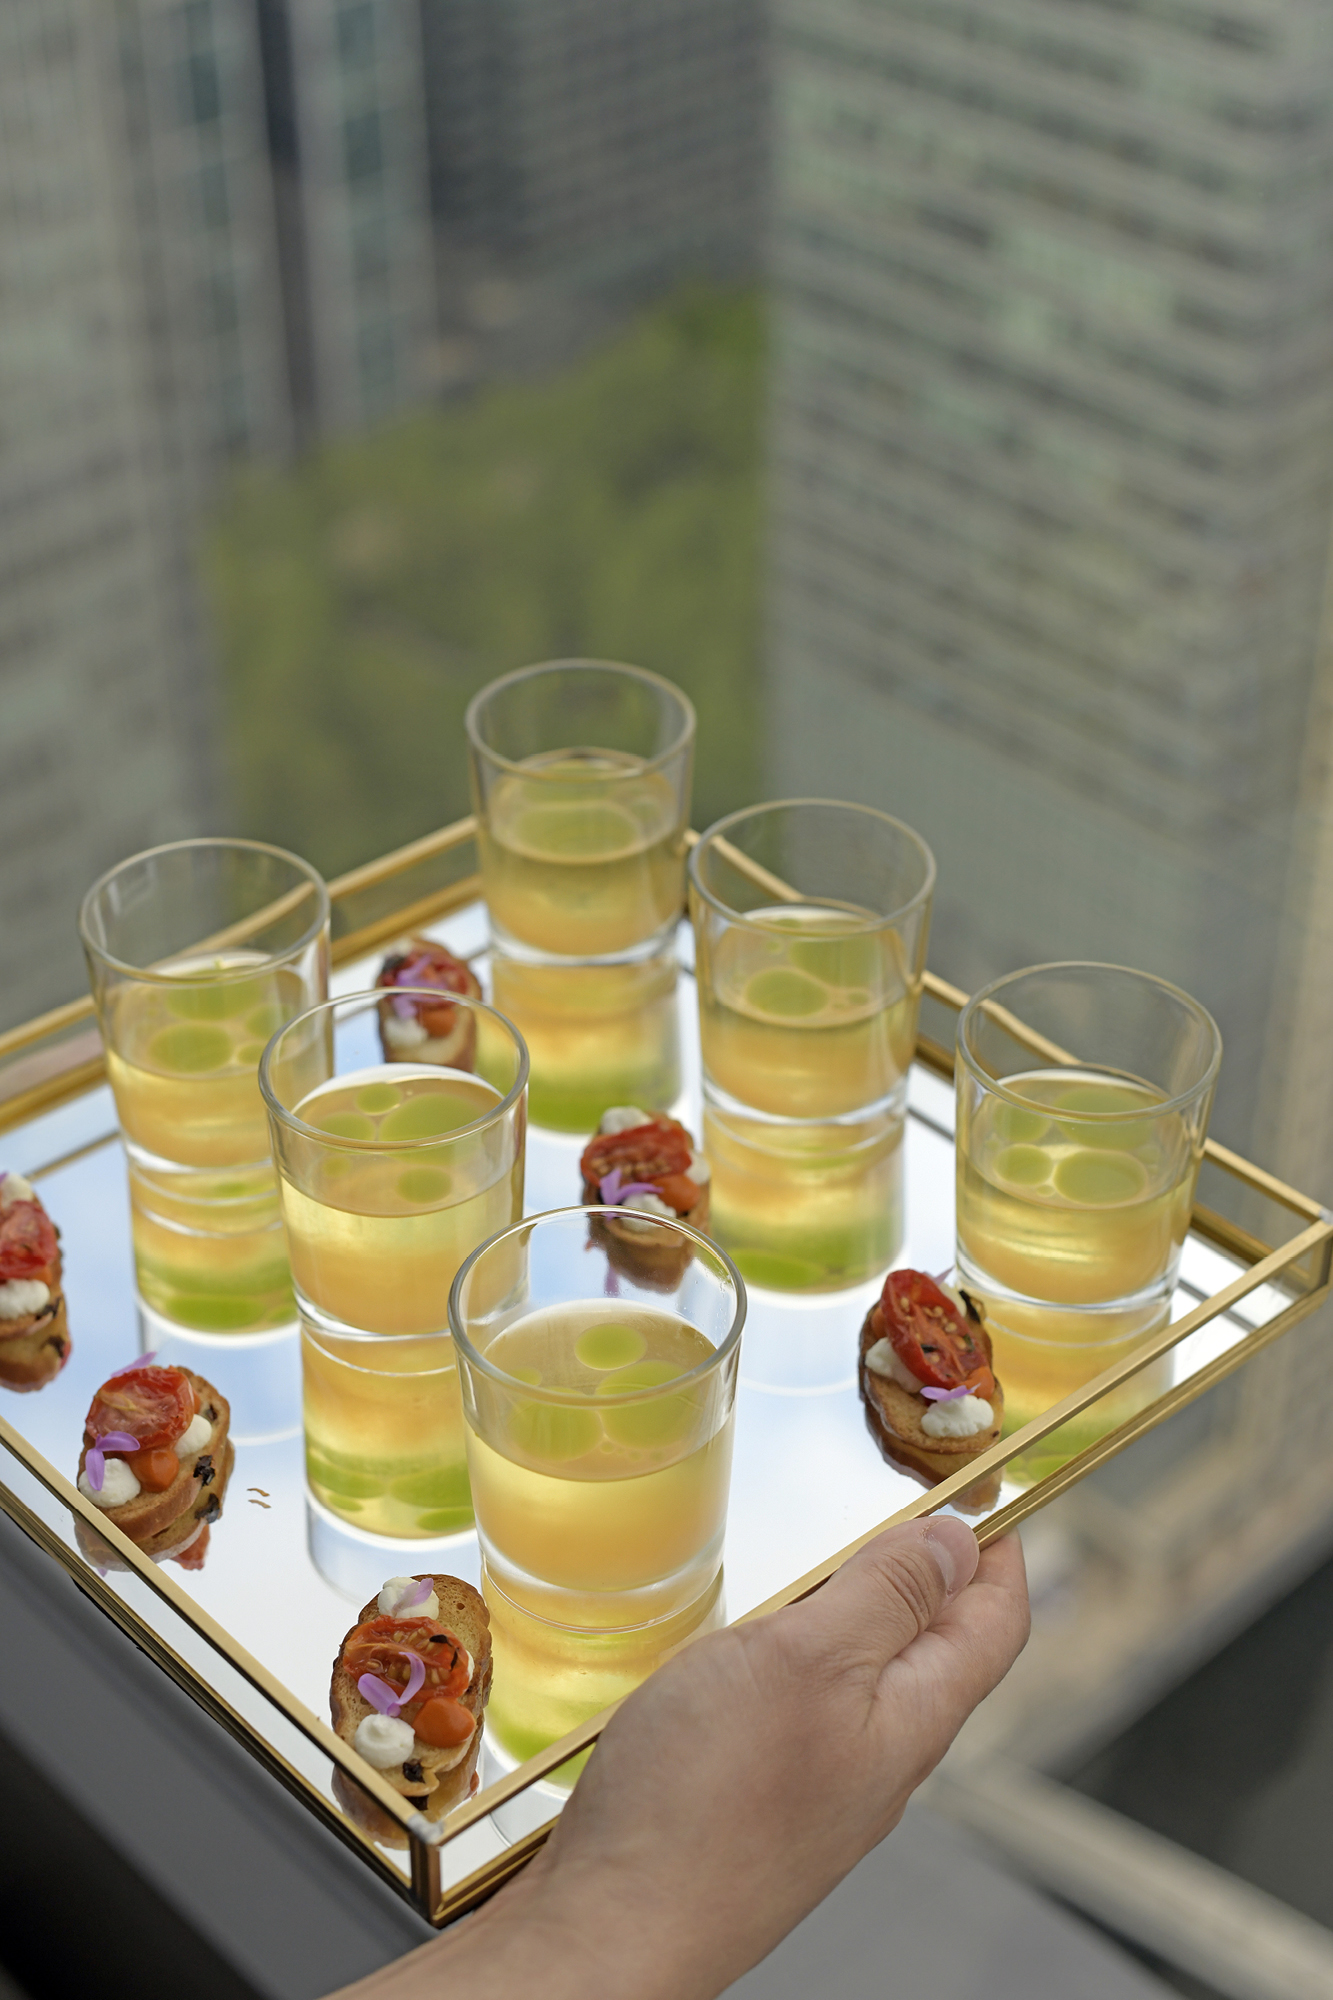 Canapés were prepared by Alyn Williams